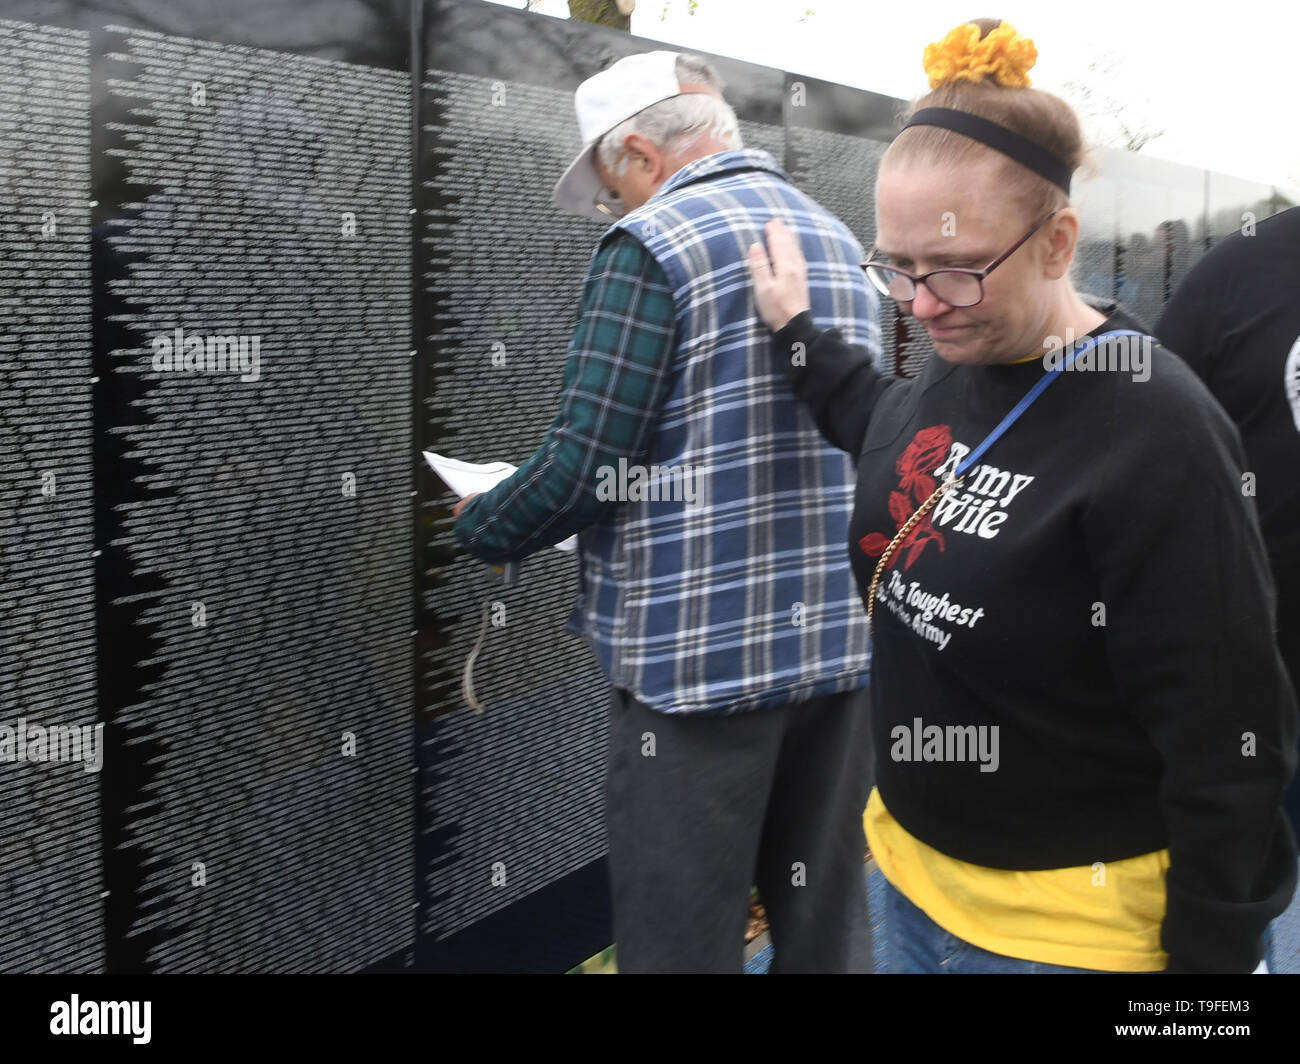 Racine, Wisconsin, USA. 18th May, 2019. A woman with a shirt that says 'Army Wife - The Toughest Job in the Army'' pats Vietnam veteran Andris Vinakmens as she passes by him at the Moving Wall, a half-size replica of the Vietnam Veterans Memorial, in Racine, Wisconsin, Saturday May 18, 2019. Forty-seven soldiers from Racine were killed during the war. The Moving Wall has been touring the United States for more than 30 years. Credit: Mark Hertzberg/ZUMA Wire/Alamy Live News - Stock Image